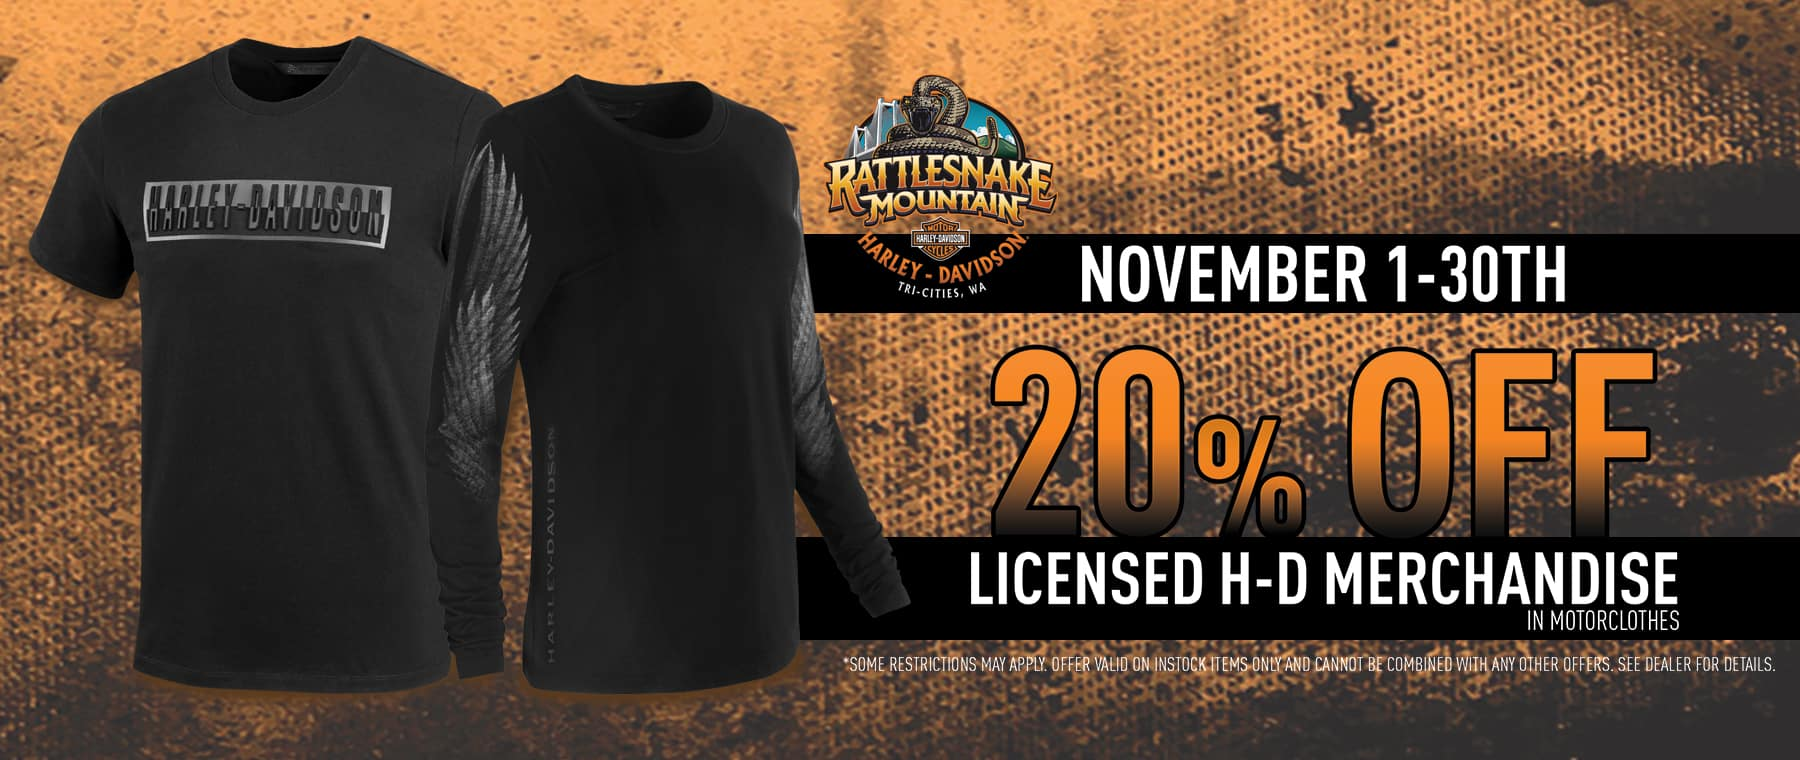 20% off licensed Harley-Davidson merchandise in motorclothes